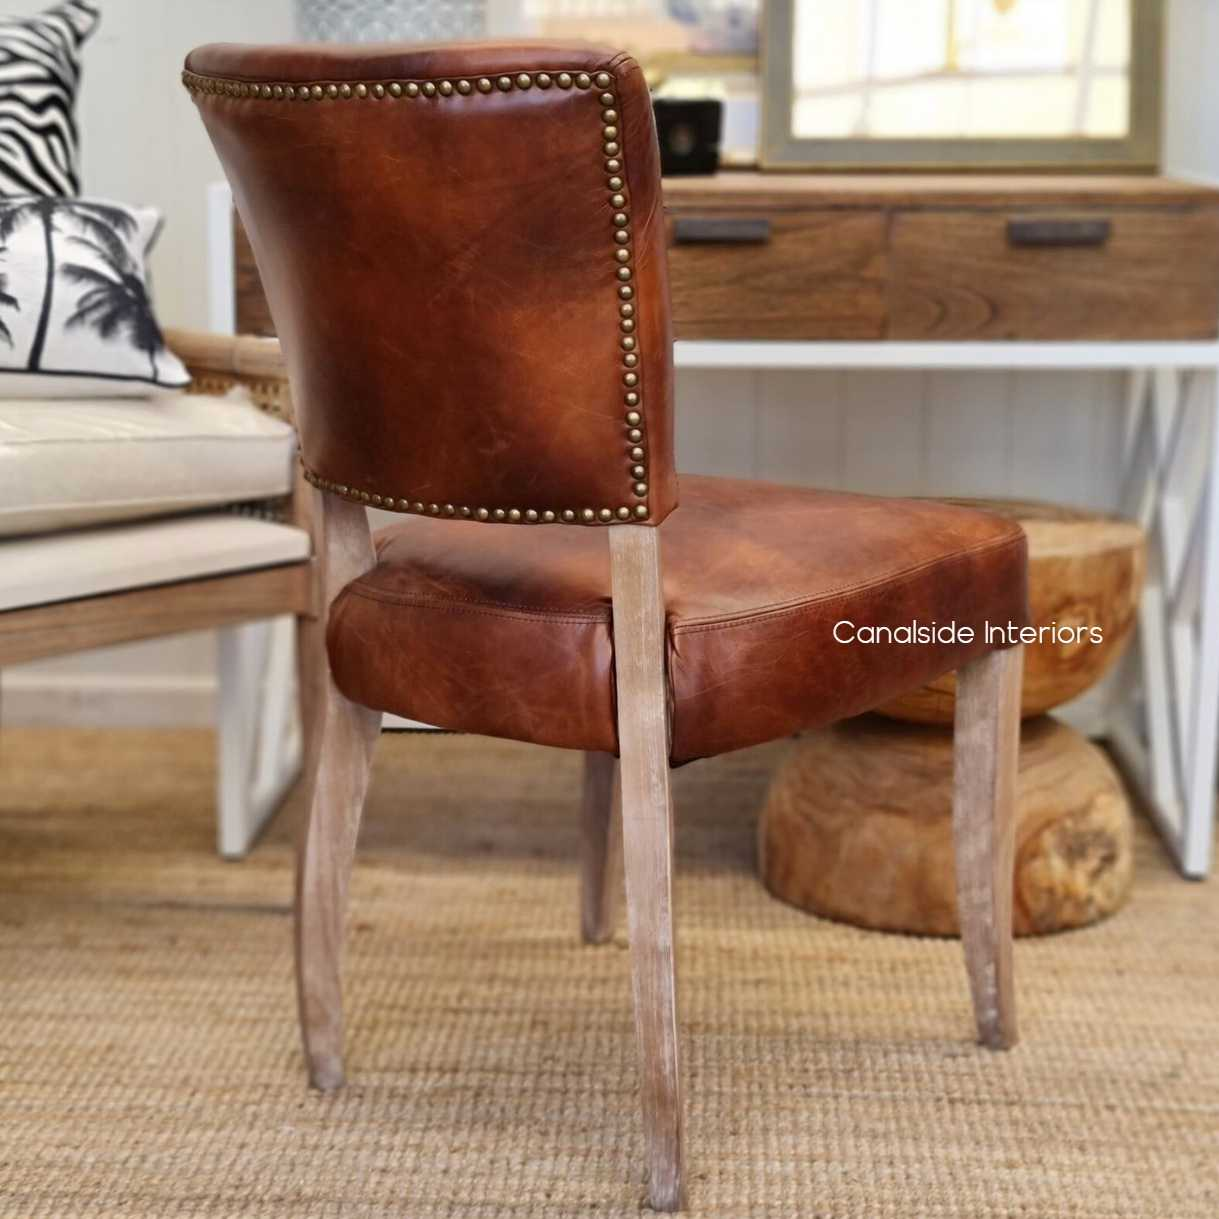 Cuba Aged Leather Dining Chairs Weathered Oak Legs Dining, CHAIRS, AGED LEATHER, CHAIRS Dining